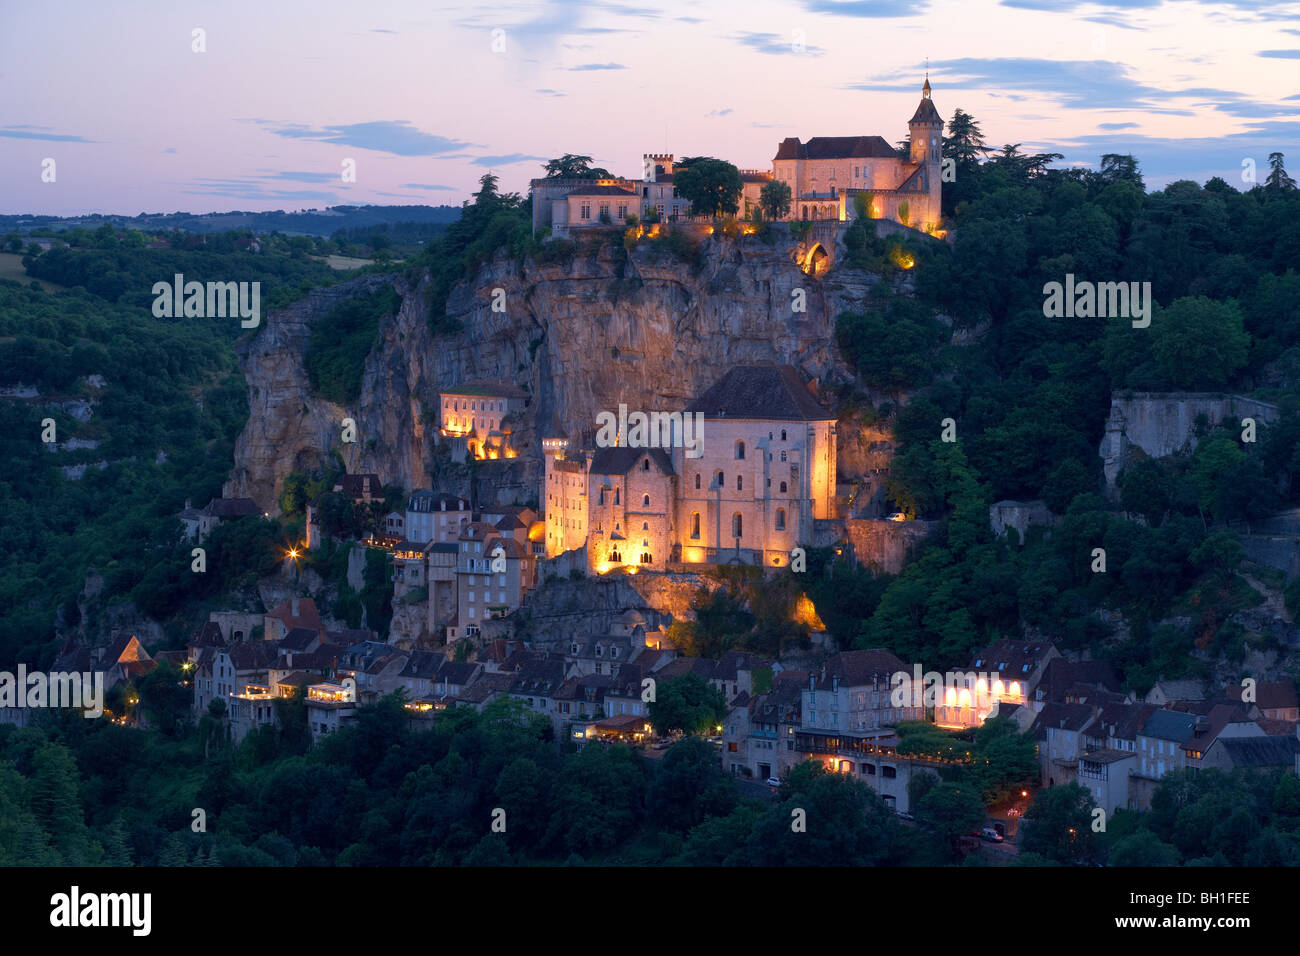 View of Rocamadour in the evening light, The Way of St. James, Roads to Santiago, Chemins de Saint-Jacques, Via - Stock Image